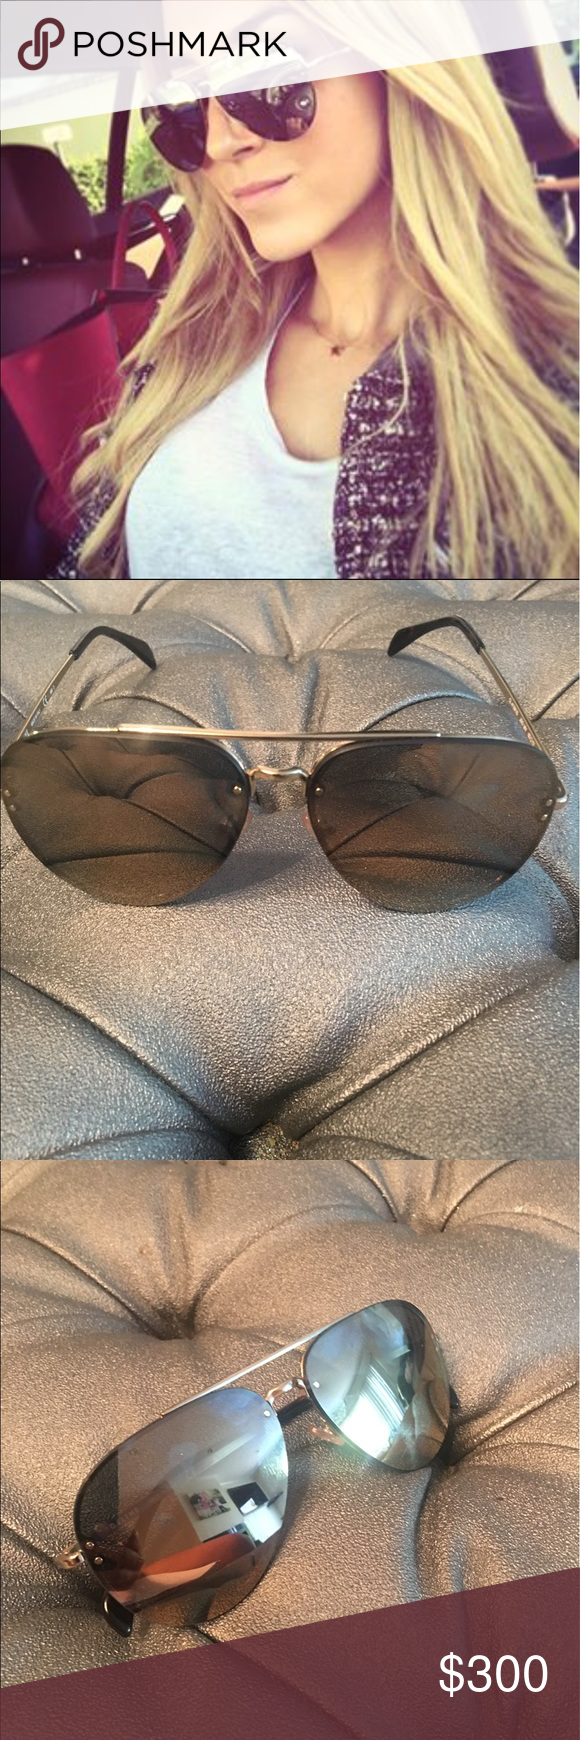 a85c900b4f36 Celine mirrored aviators Brand new Celine Aviators CL 41391/S J5G MV 60.  Luxury elegance and class defines this eye wear. gold/bronze mirrored lens  with ...